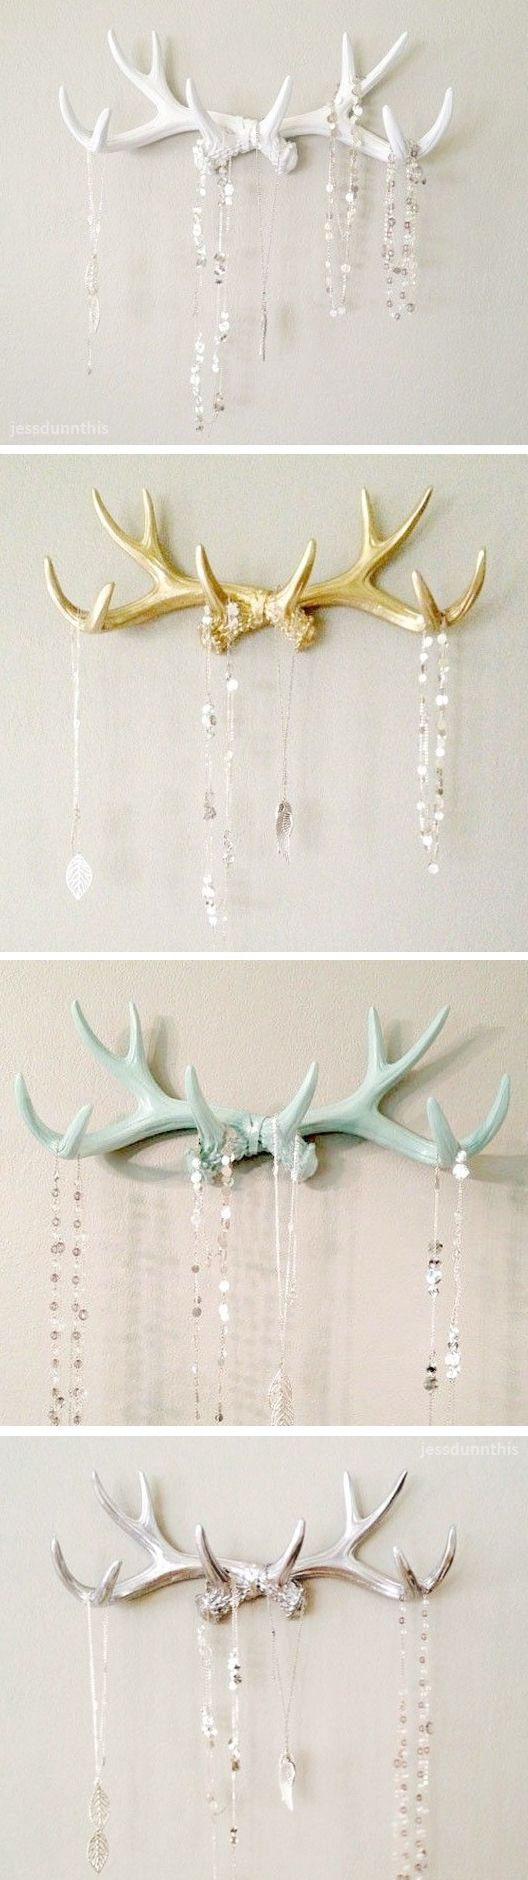 Antler jewelry hanger wall hooks | white, gold, mint, silver #product_design